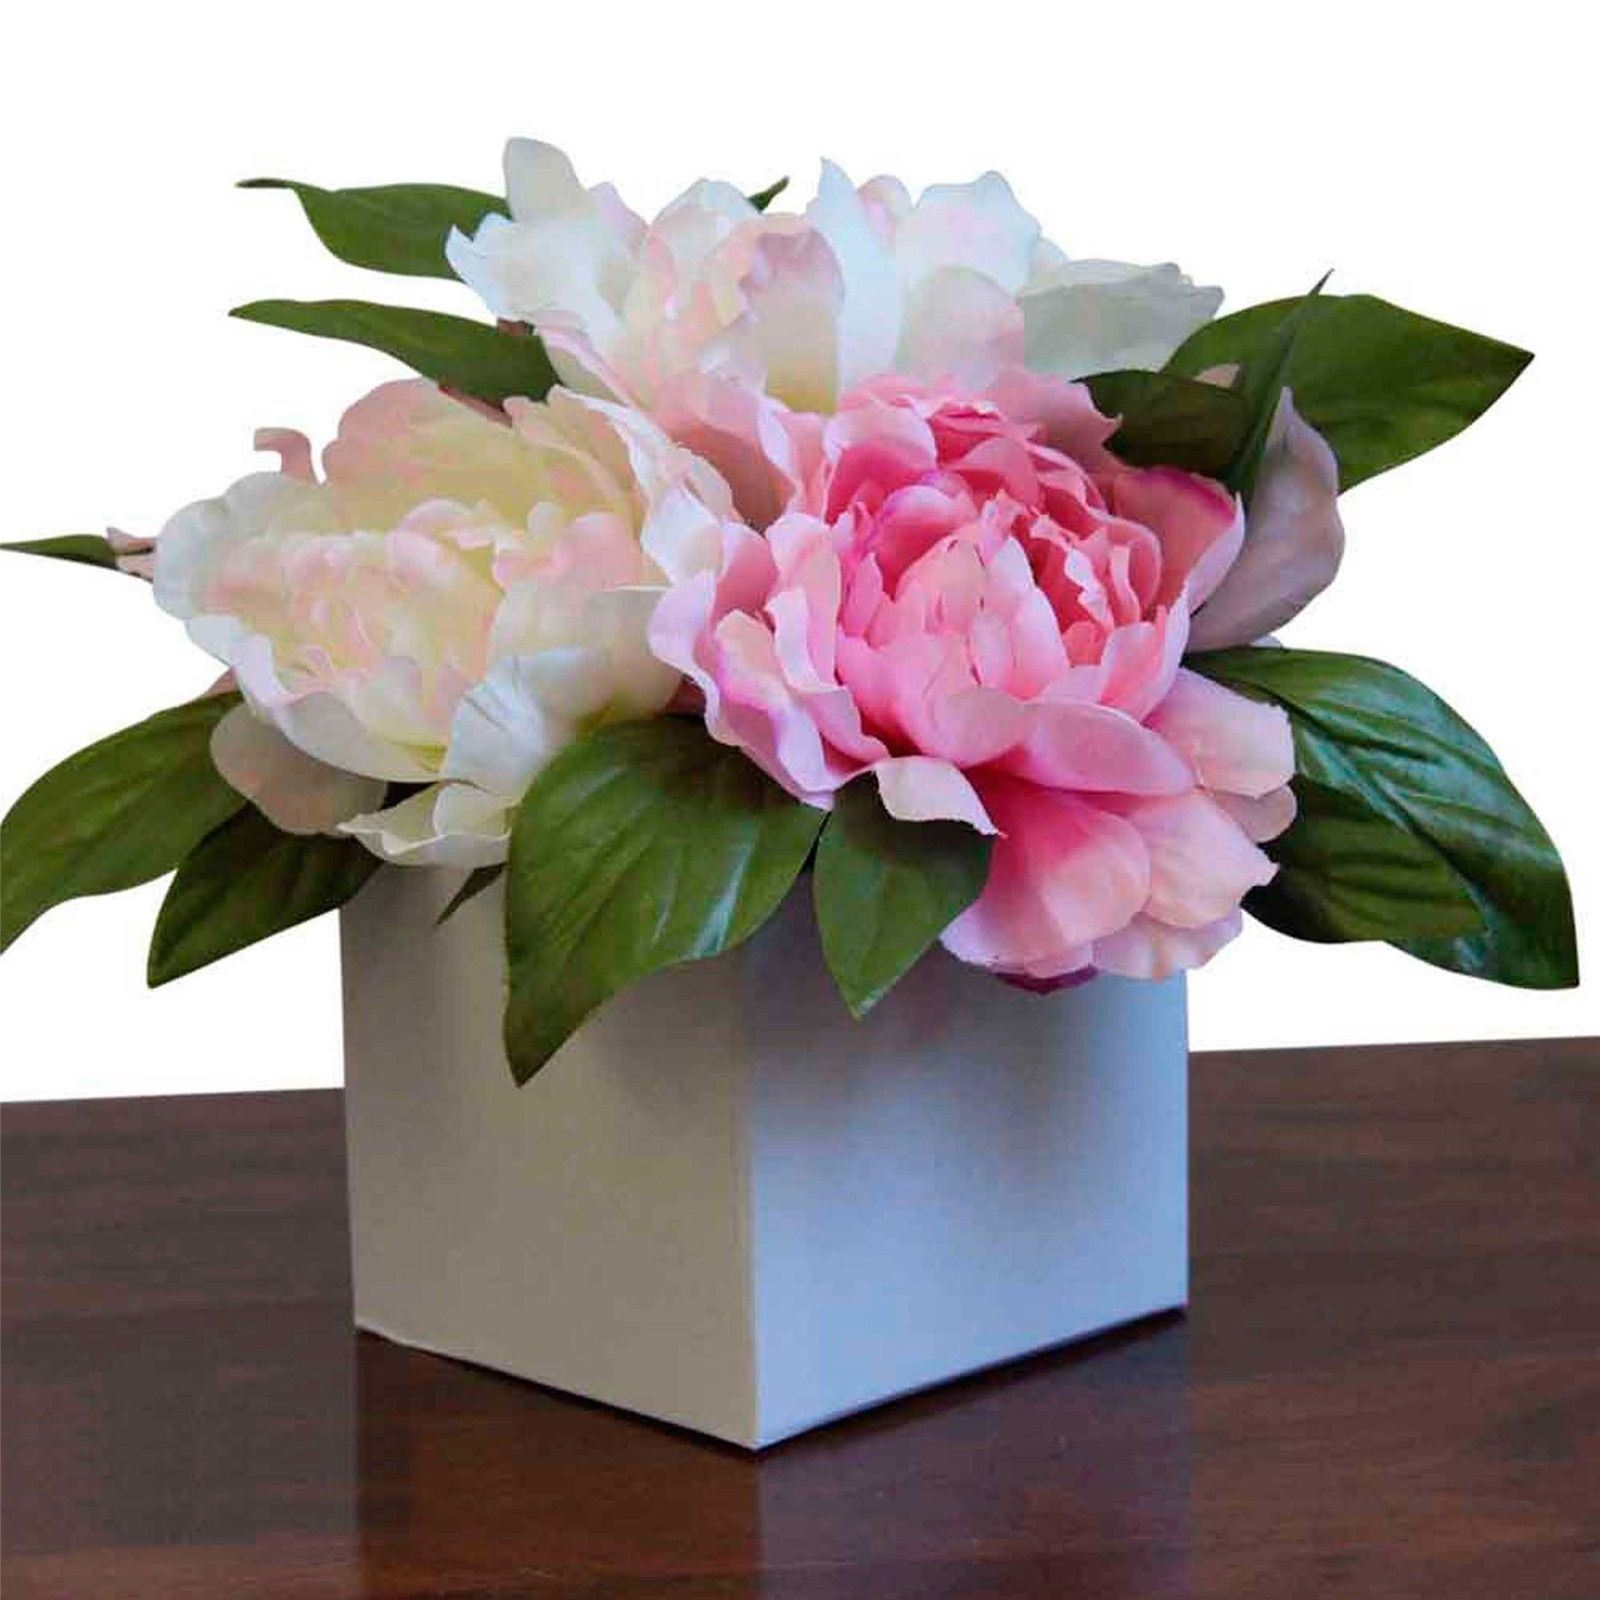 Artificial plantsflowers collection on ebay artificial replica office house plants silk flowers red pink roses bamboo tree mightylinksfo